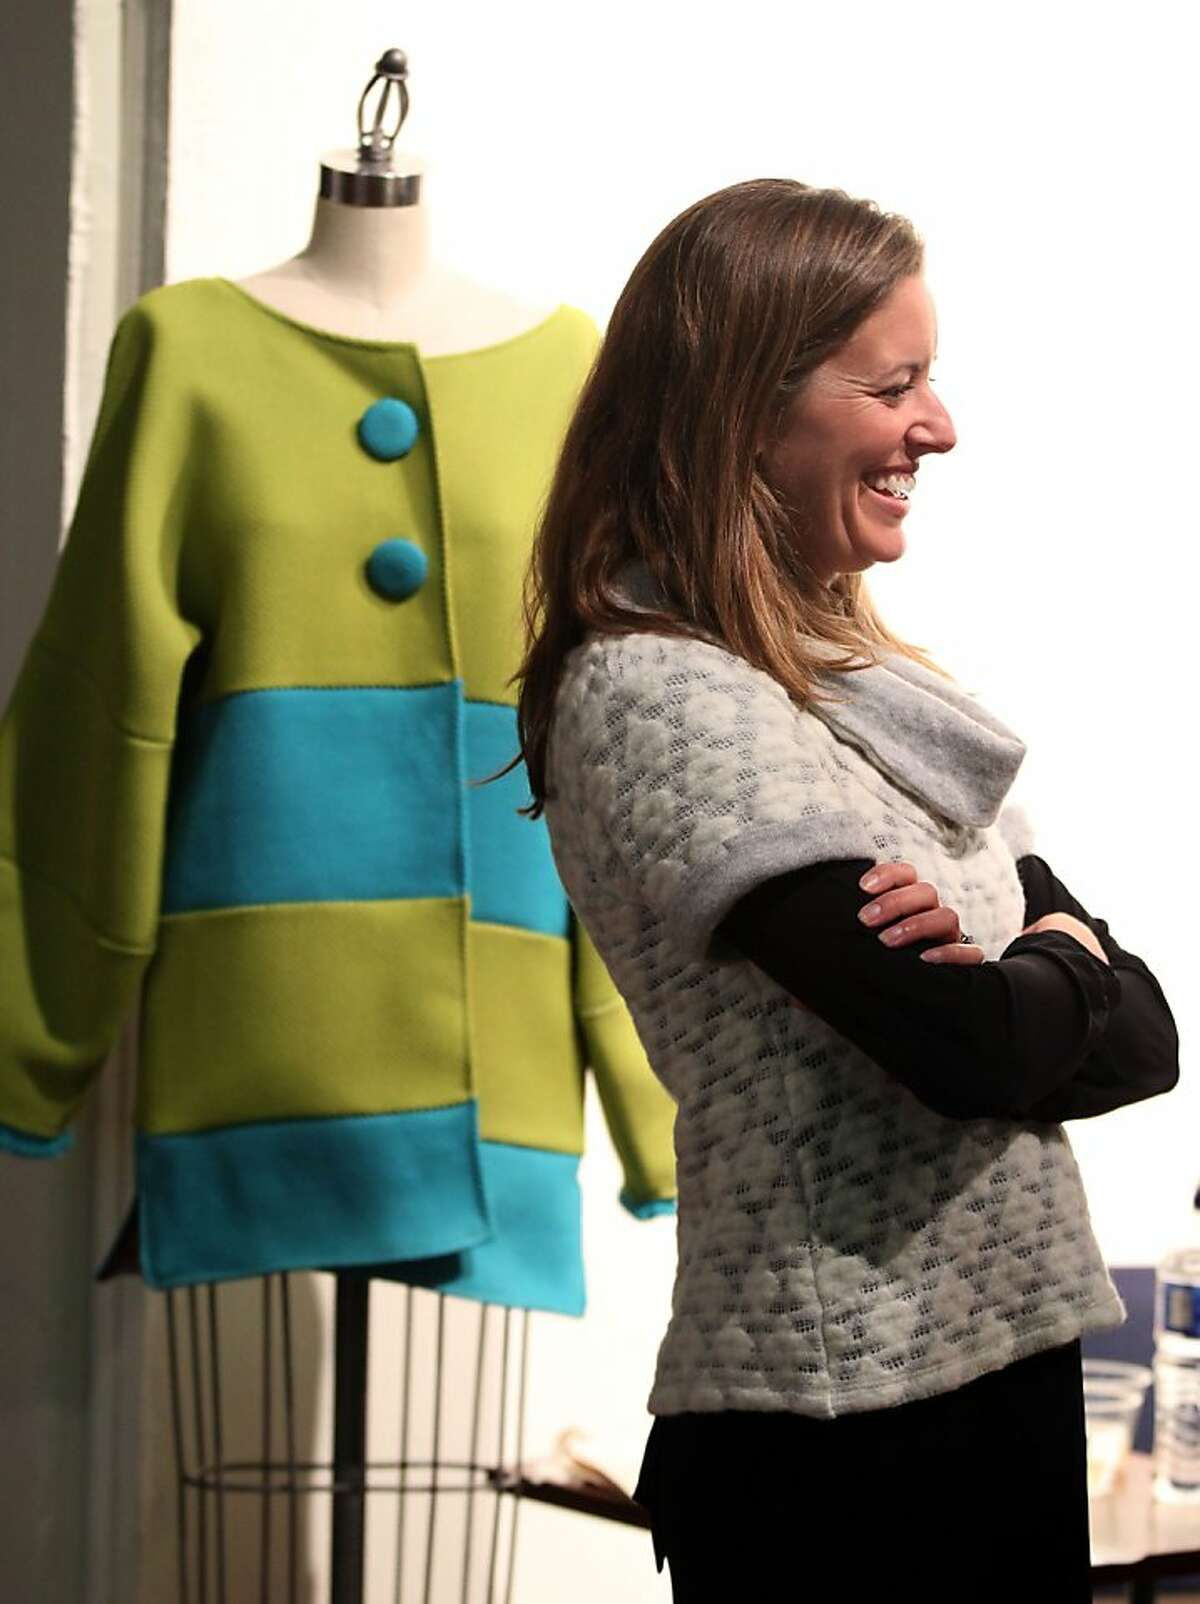 Liz Monteleone models a Dublin Sweeter in front of a Lantern Stove Jacket designed by Kathleen van der Spek of San Francisco at the Philanthropy by Design anniversary party and fundraiser Wednesday, February 13, 2013. In San Francisco Calif.